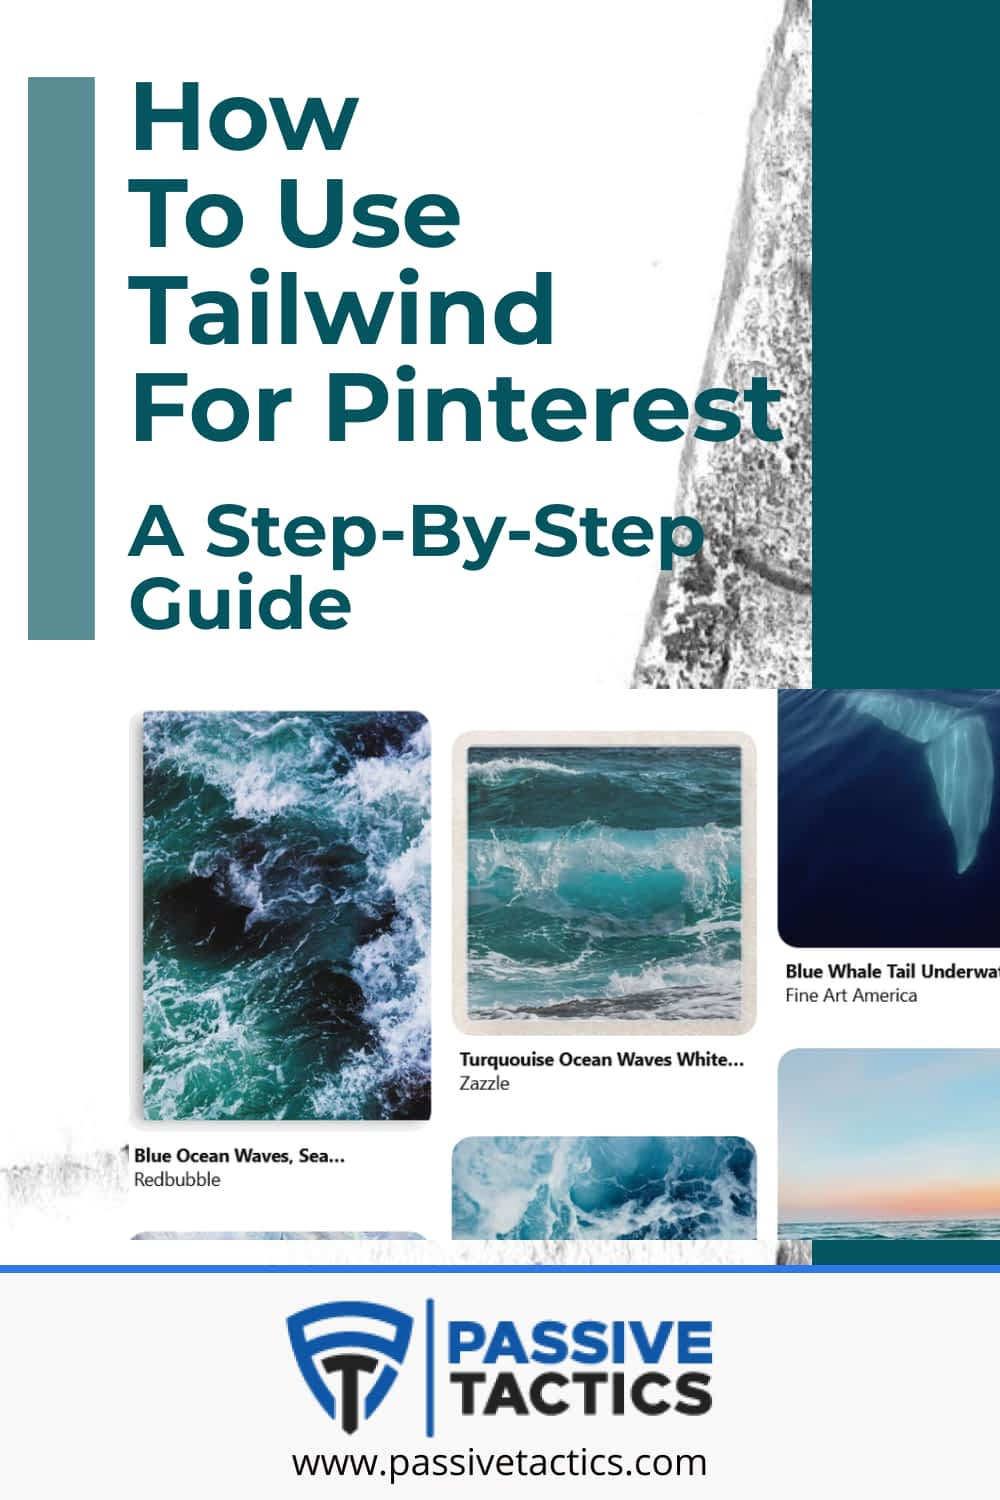 How To Use Tailwind For Pinterest: A Step-By-Step Guide